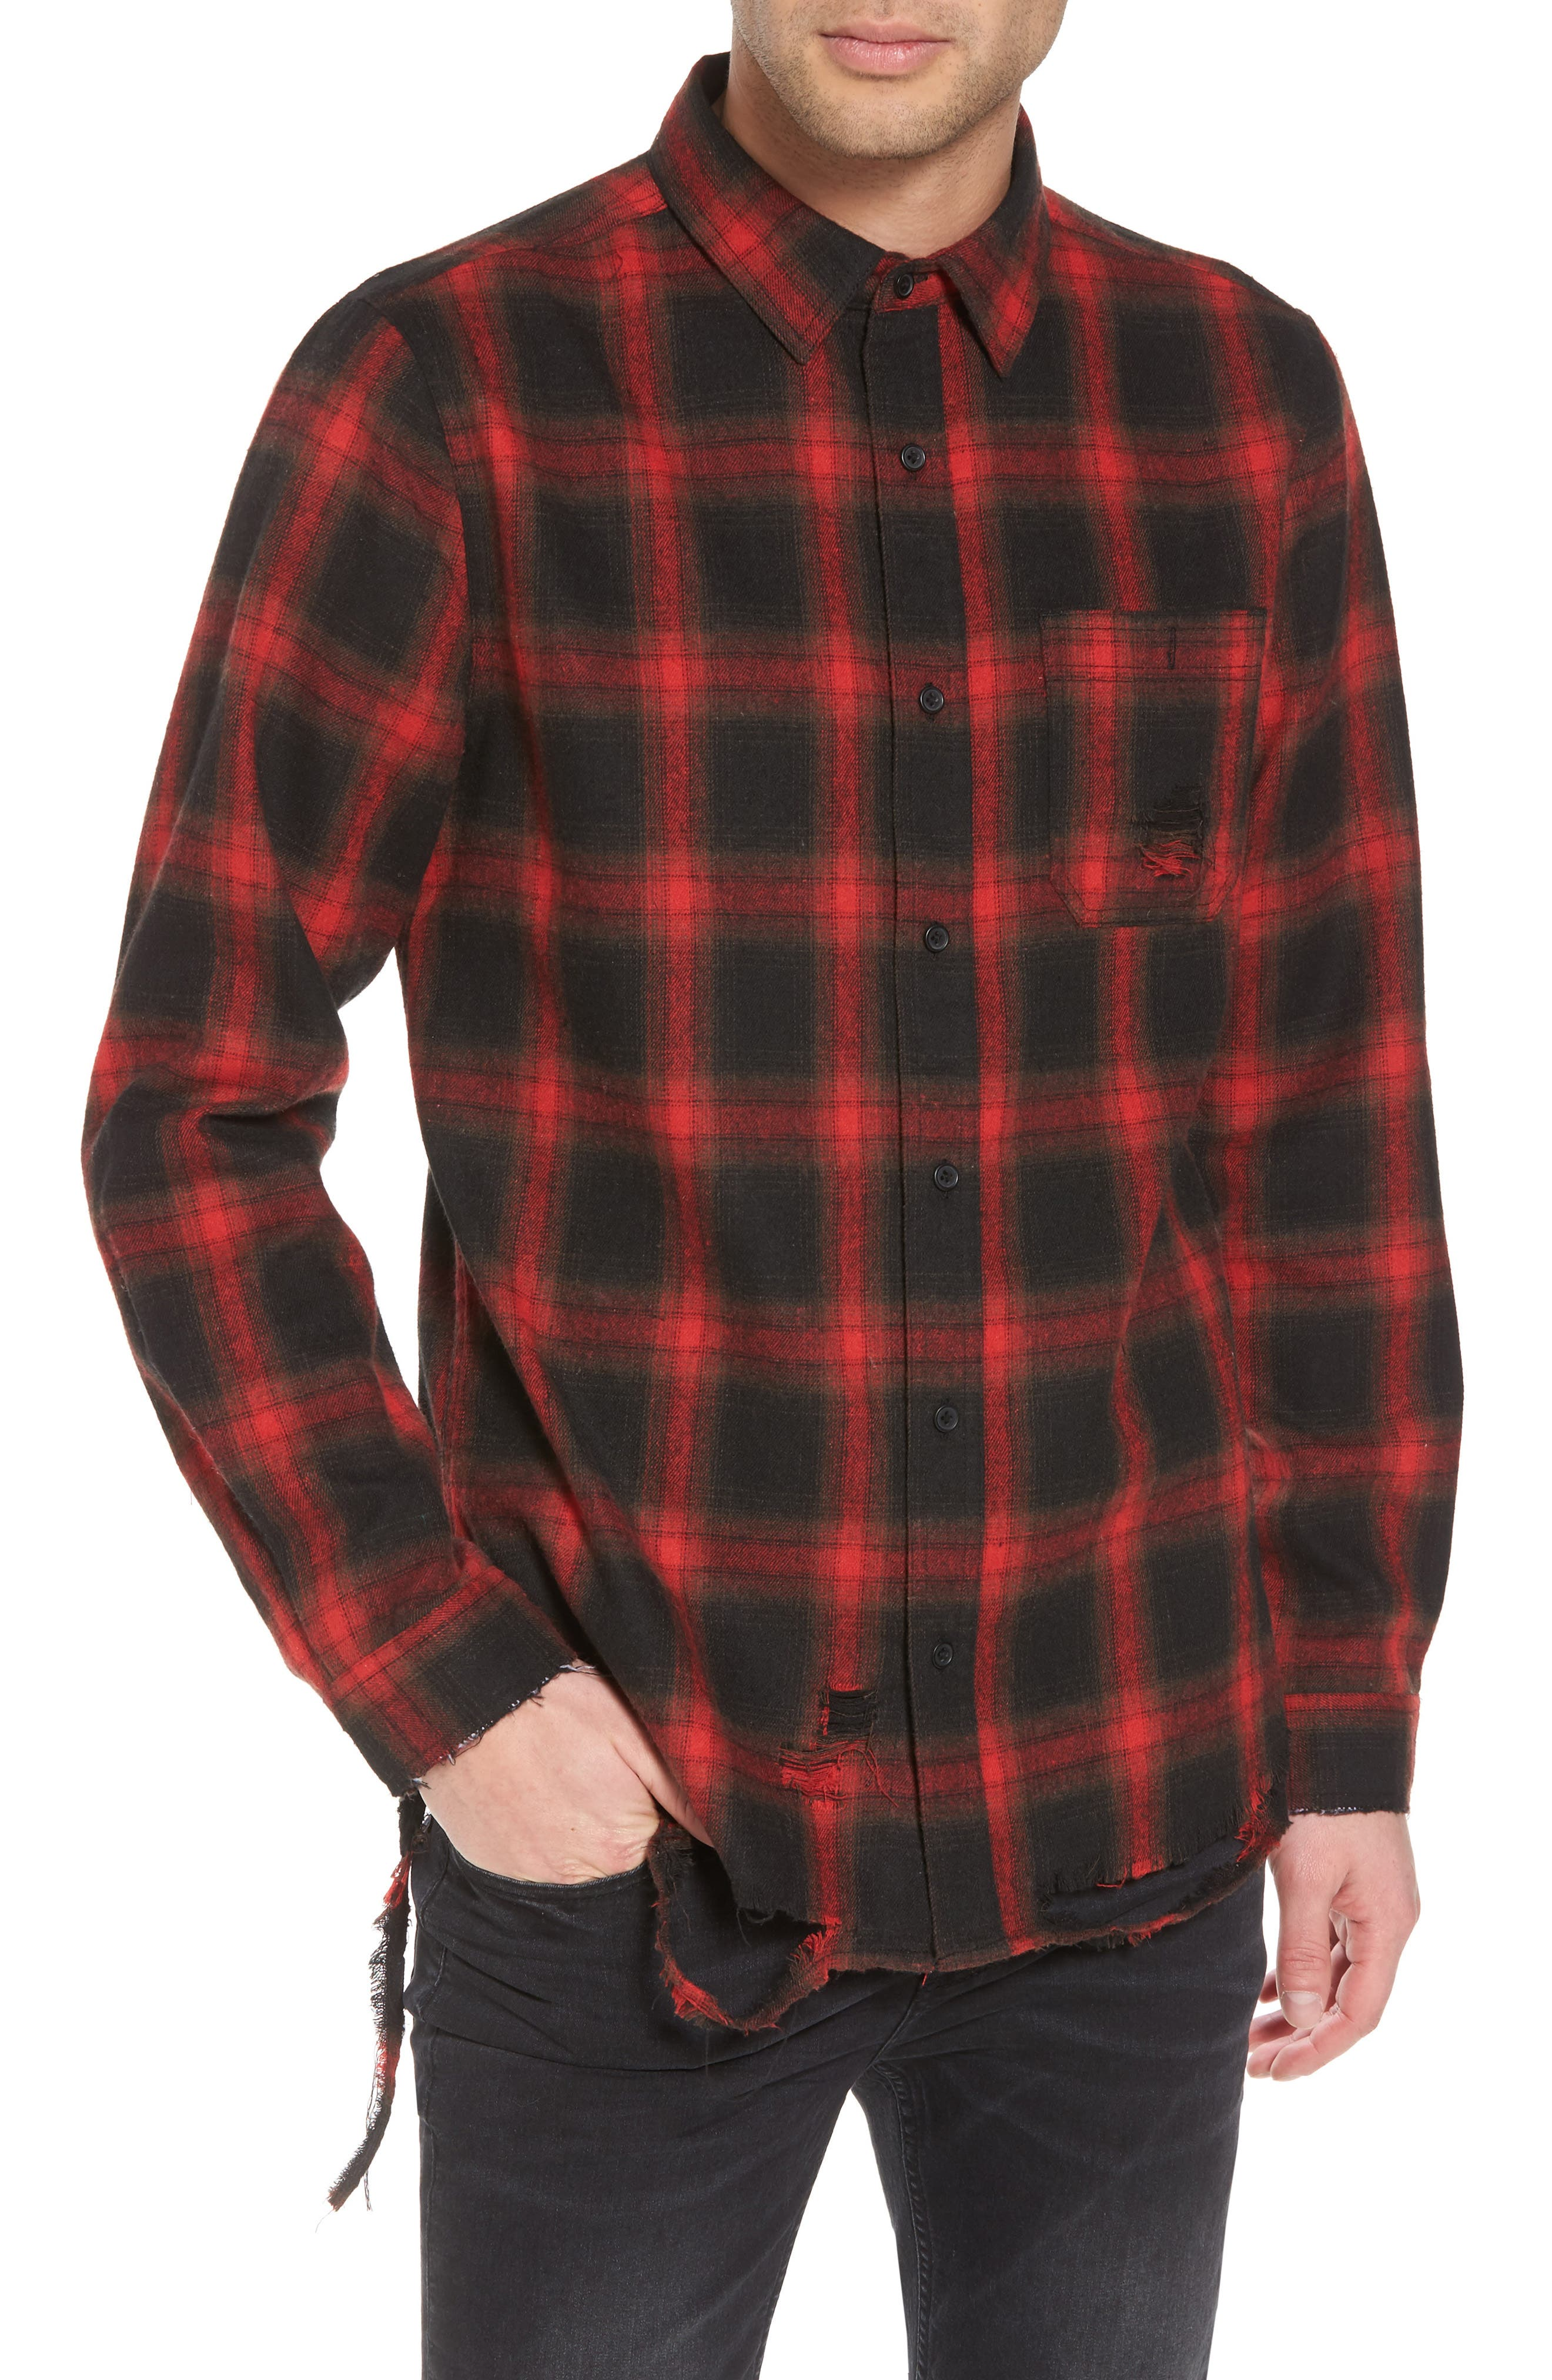 Shredded Plaid Flannel Shirt,                             Main thumbnail 1, color,                             Black Rock Red Ombre Check